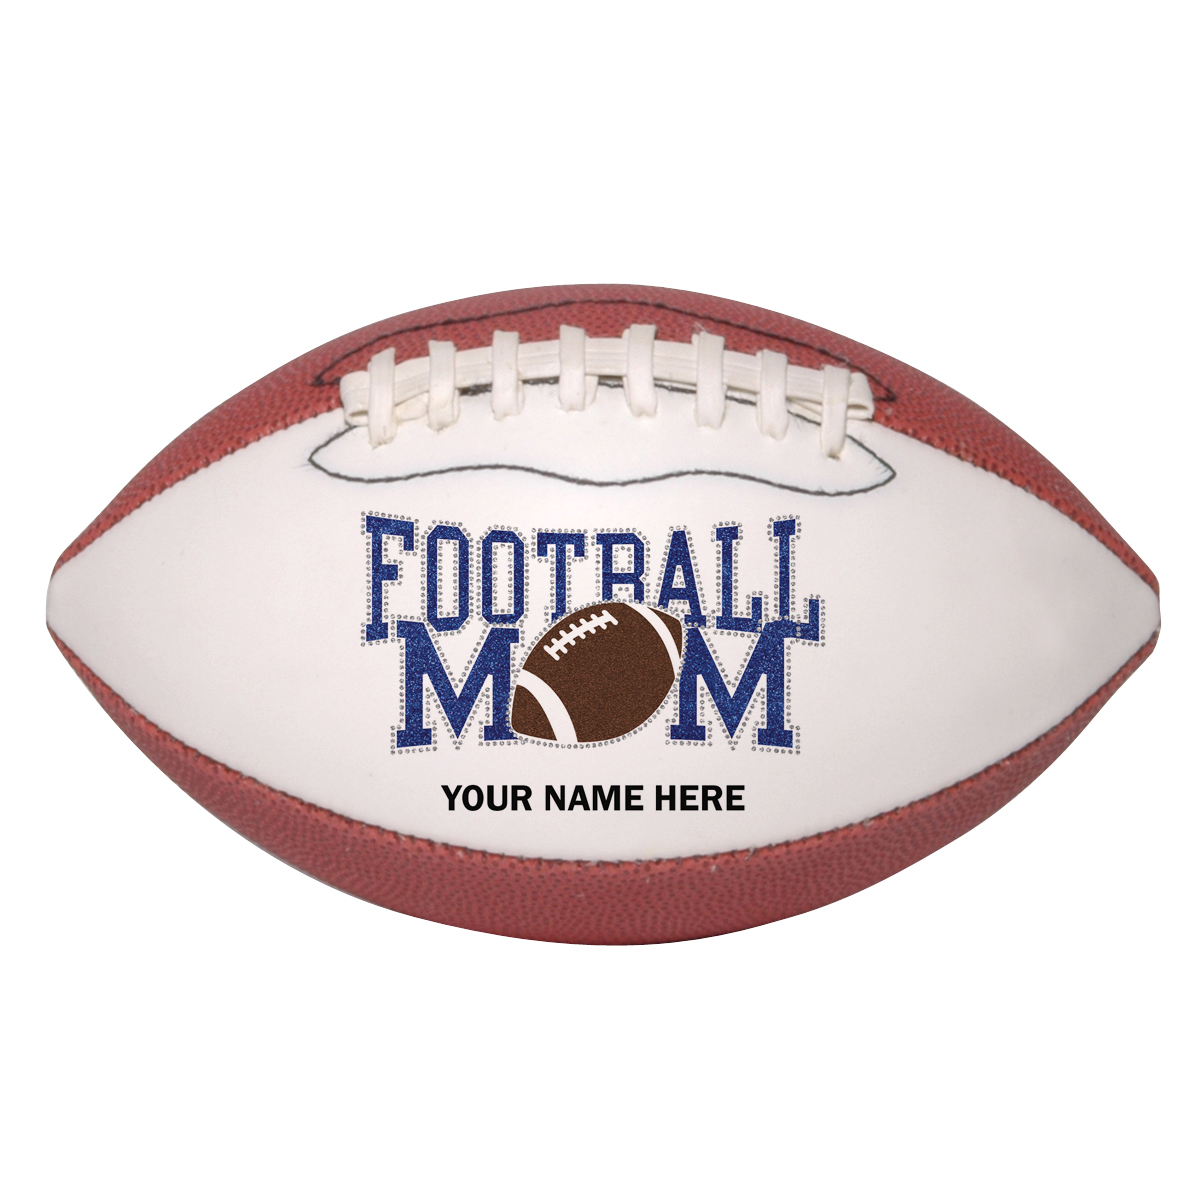 Football Football Mom Mothers Day Gift Mothers Day Personalized Gift Gift For Mom Gift For Her Mother In Law Gift Sports Gifts Moms In 2020 Football Mom Gifts Mother In Law